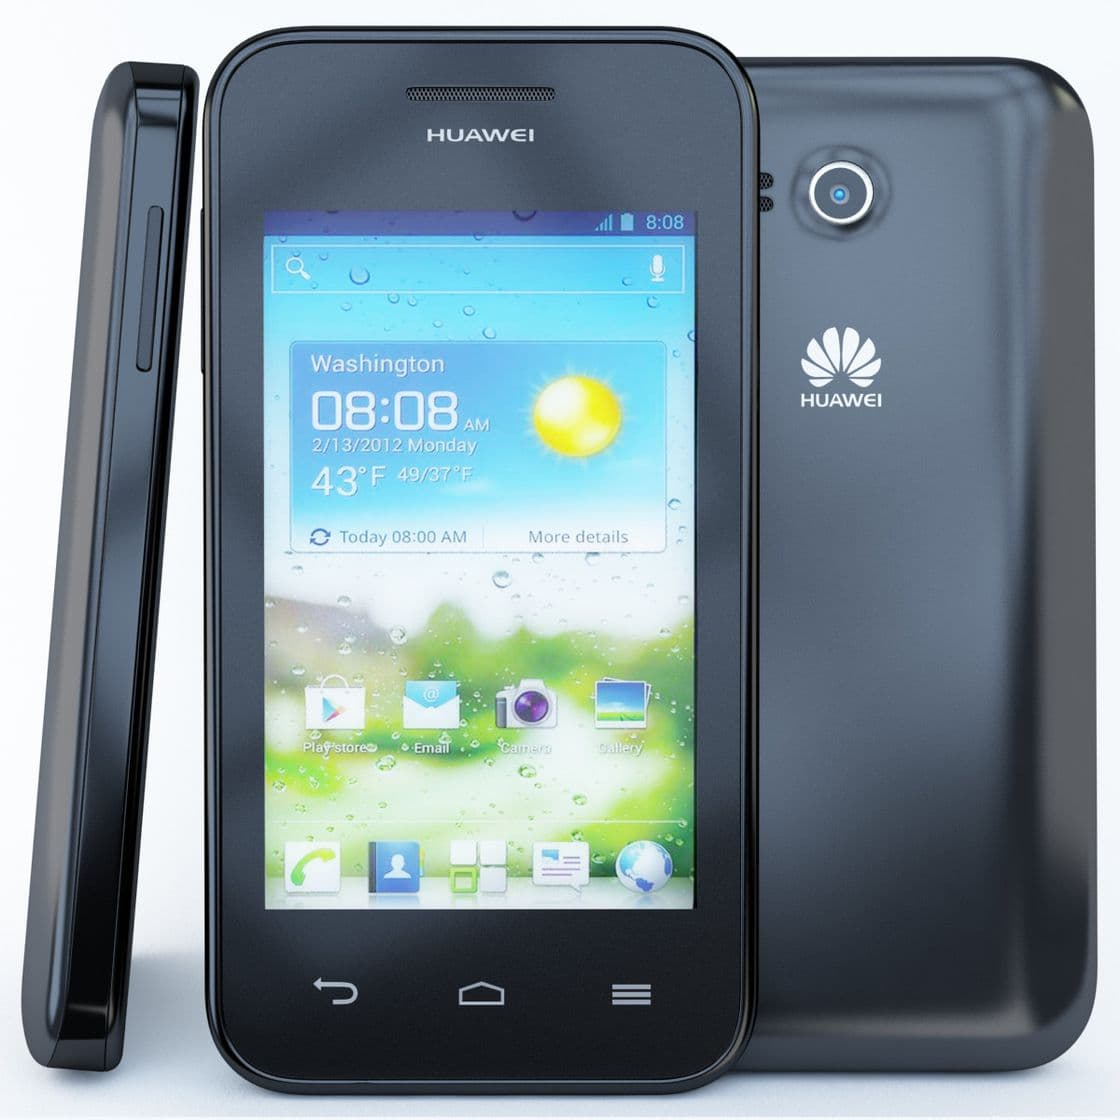 Huawei Ascend Y220 buy smartphone, compare prices in ...